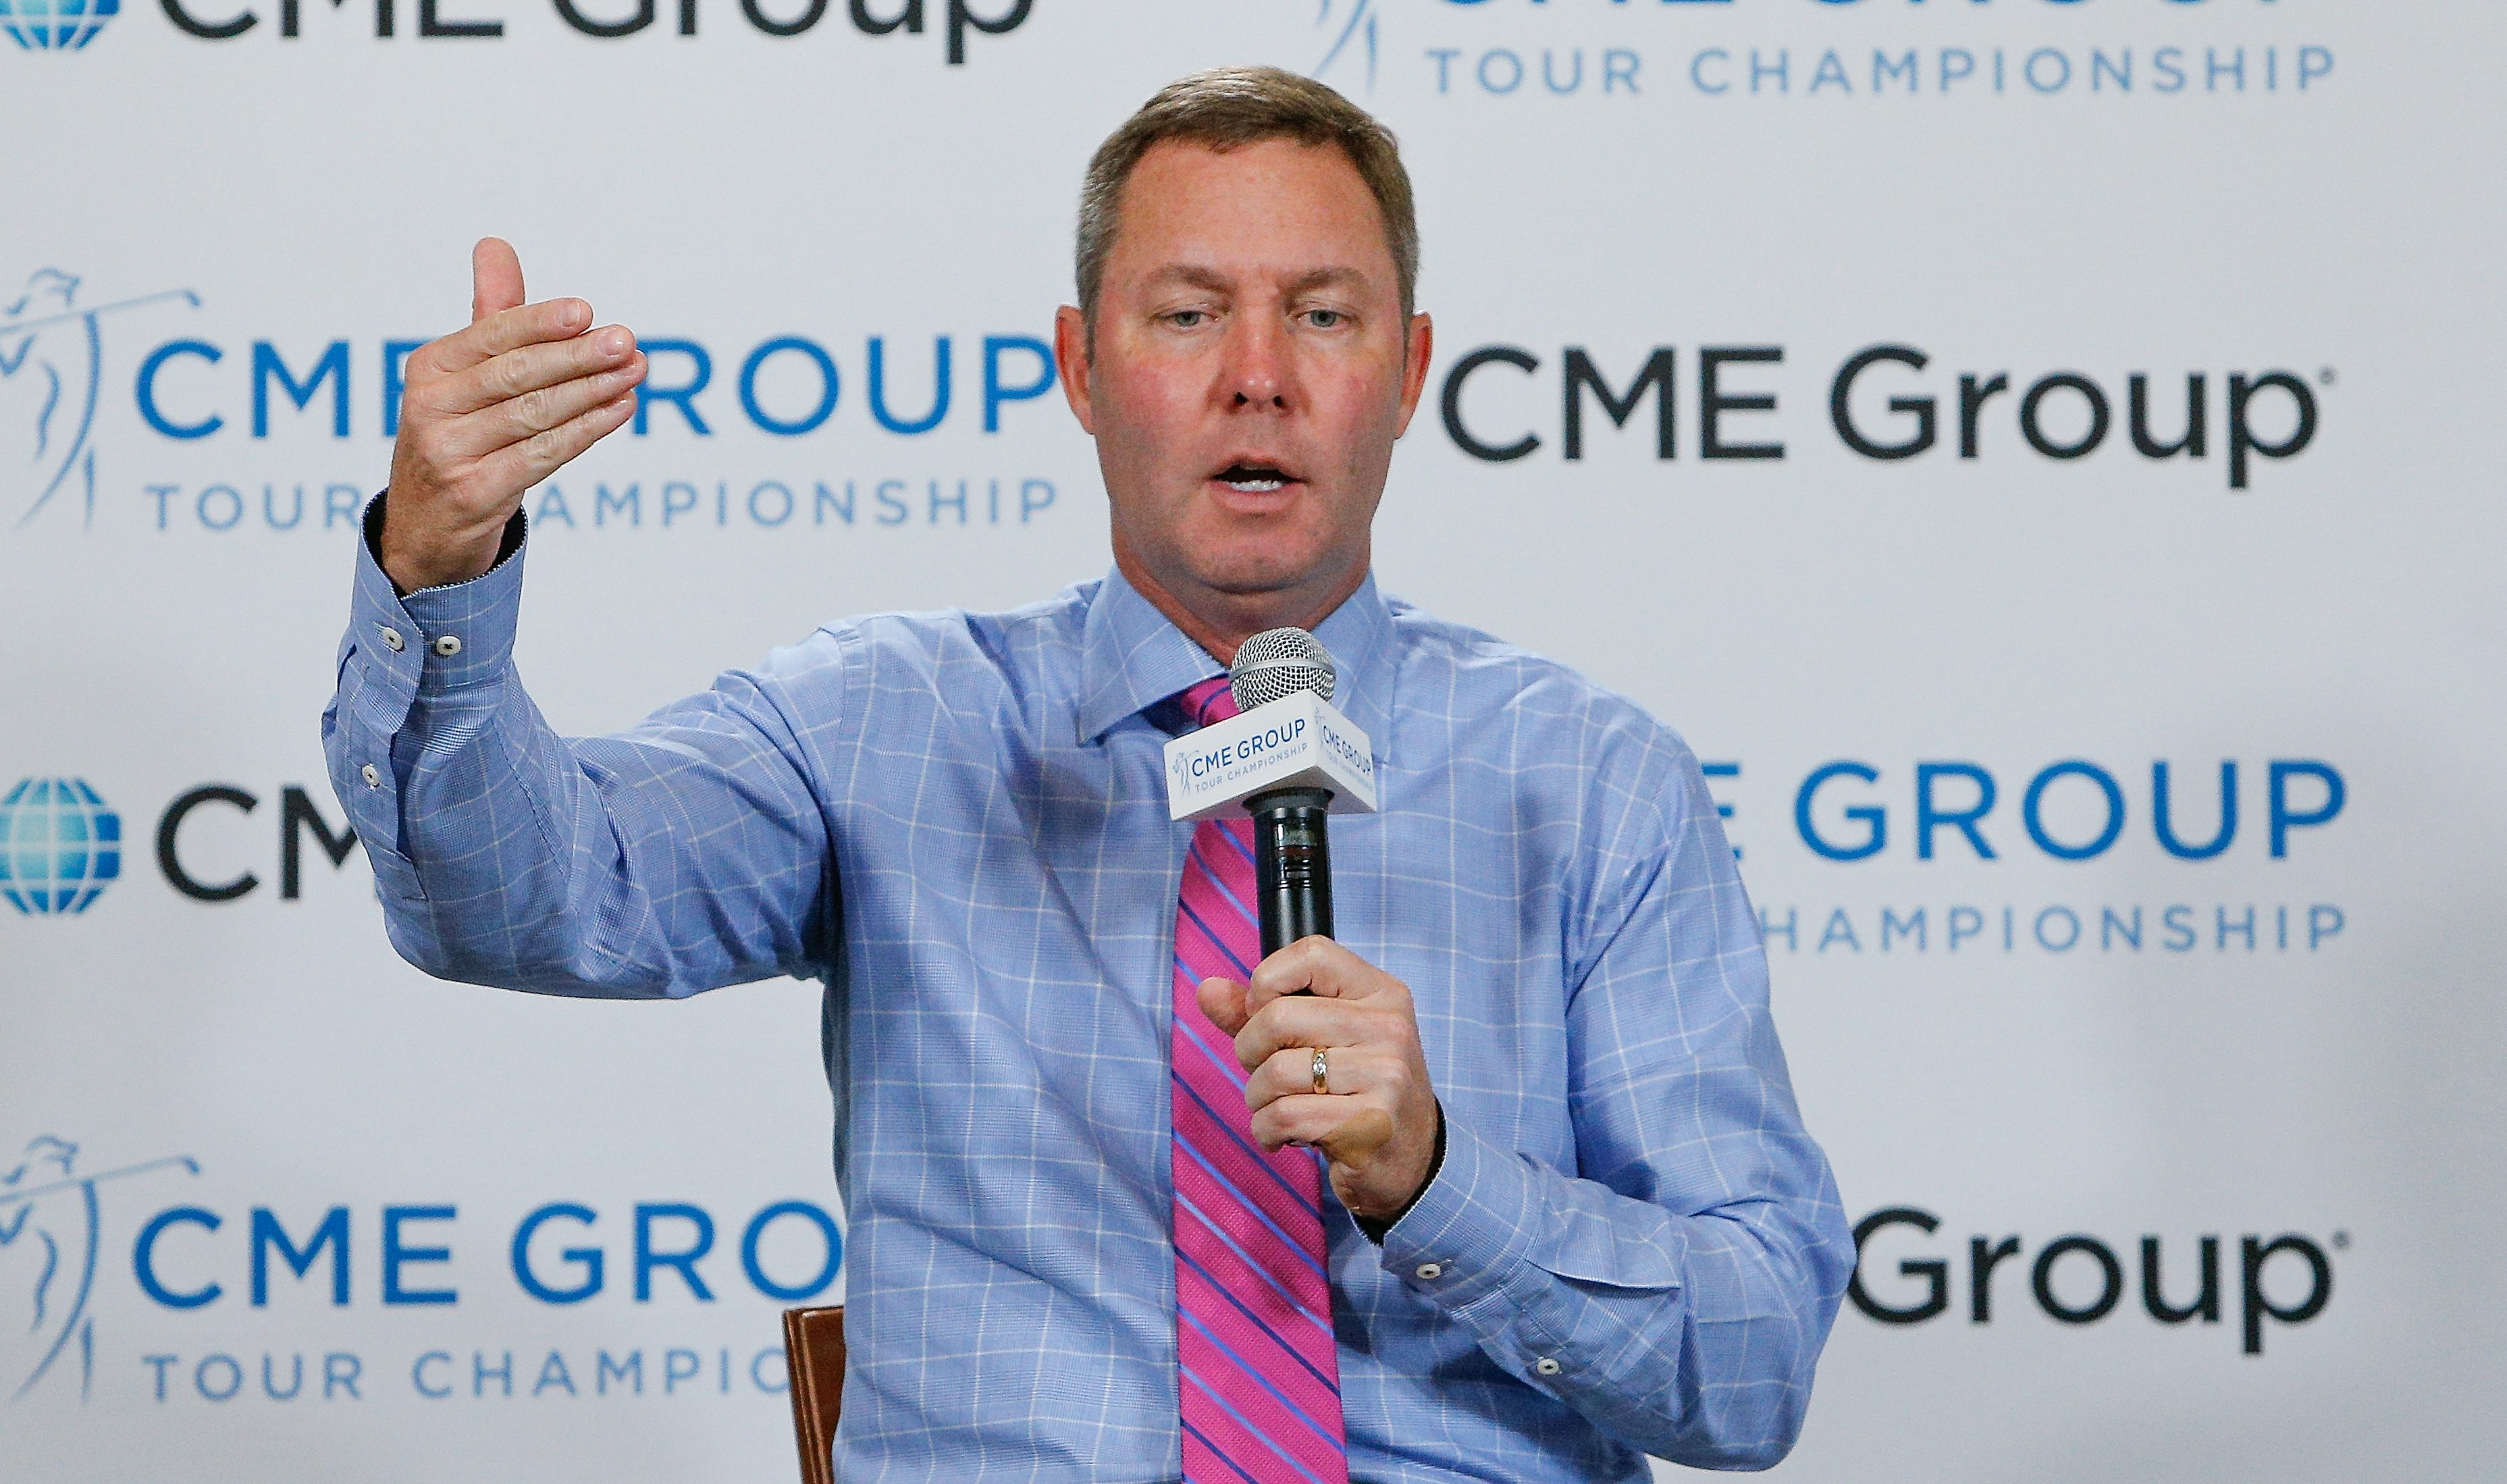 NAPLES, FL - NOVEMBER 16: LPGA Commissioner Michael Whan address the media during State of the LPGA at the CME Group Tour Championship at Tiburon Golf Club on November 16, 2018 in Naples, Florida. (Photo by Michael Reaves/Getty Images)